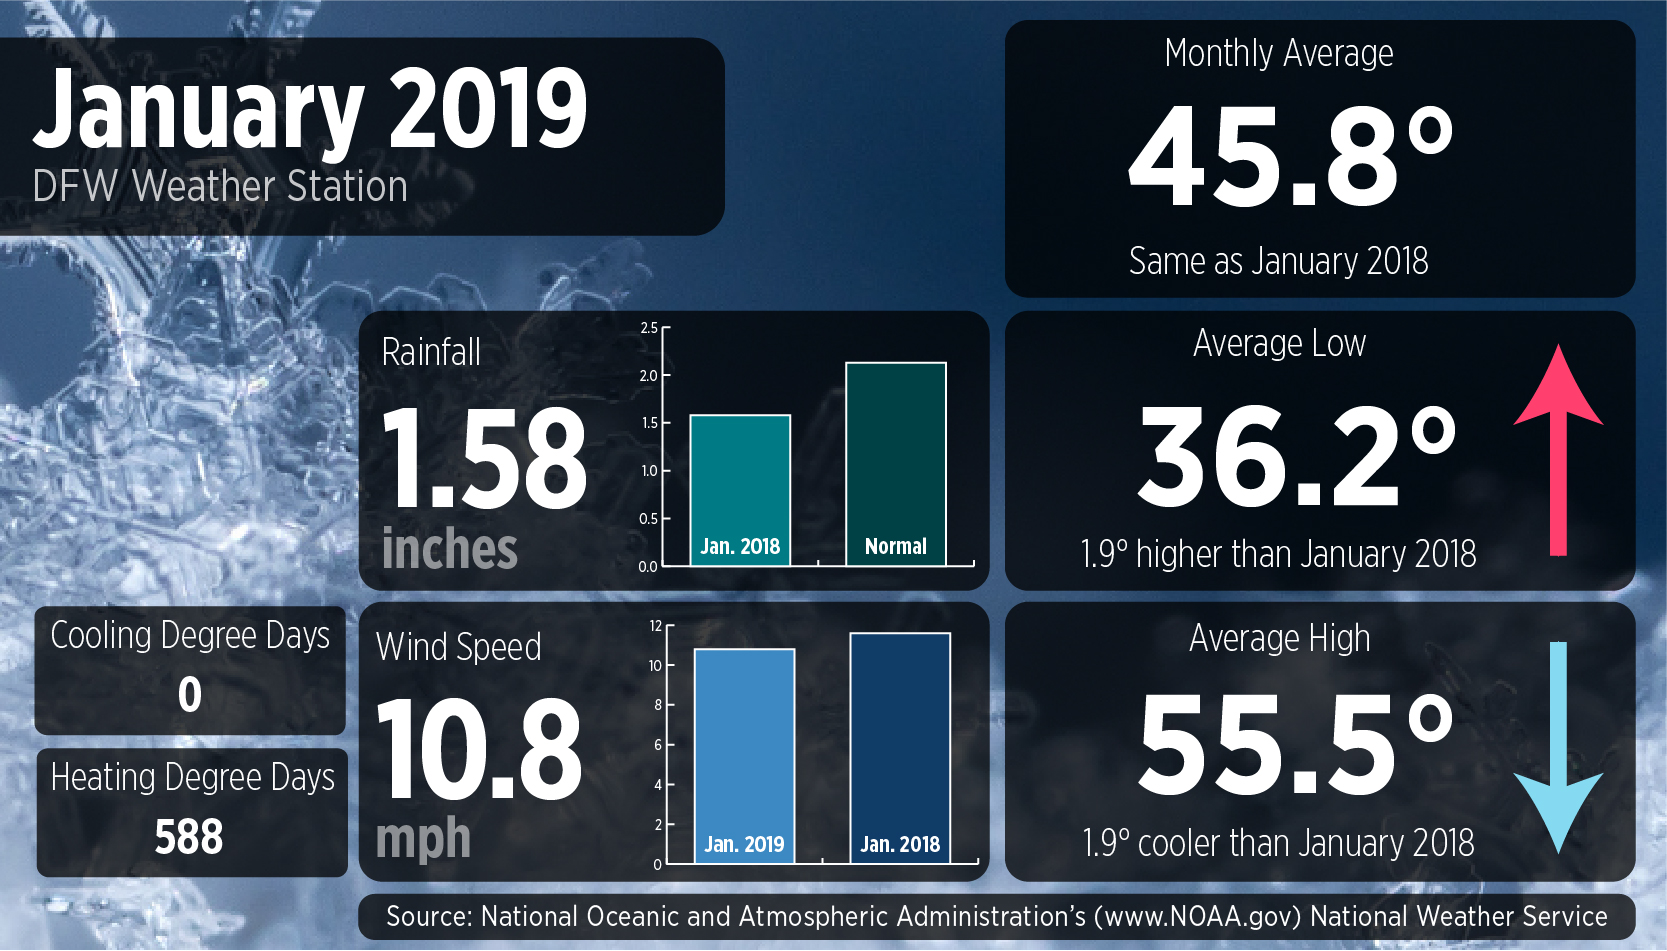 January 2019 Weather Stats